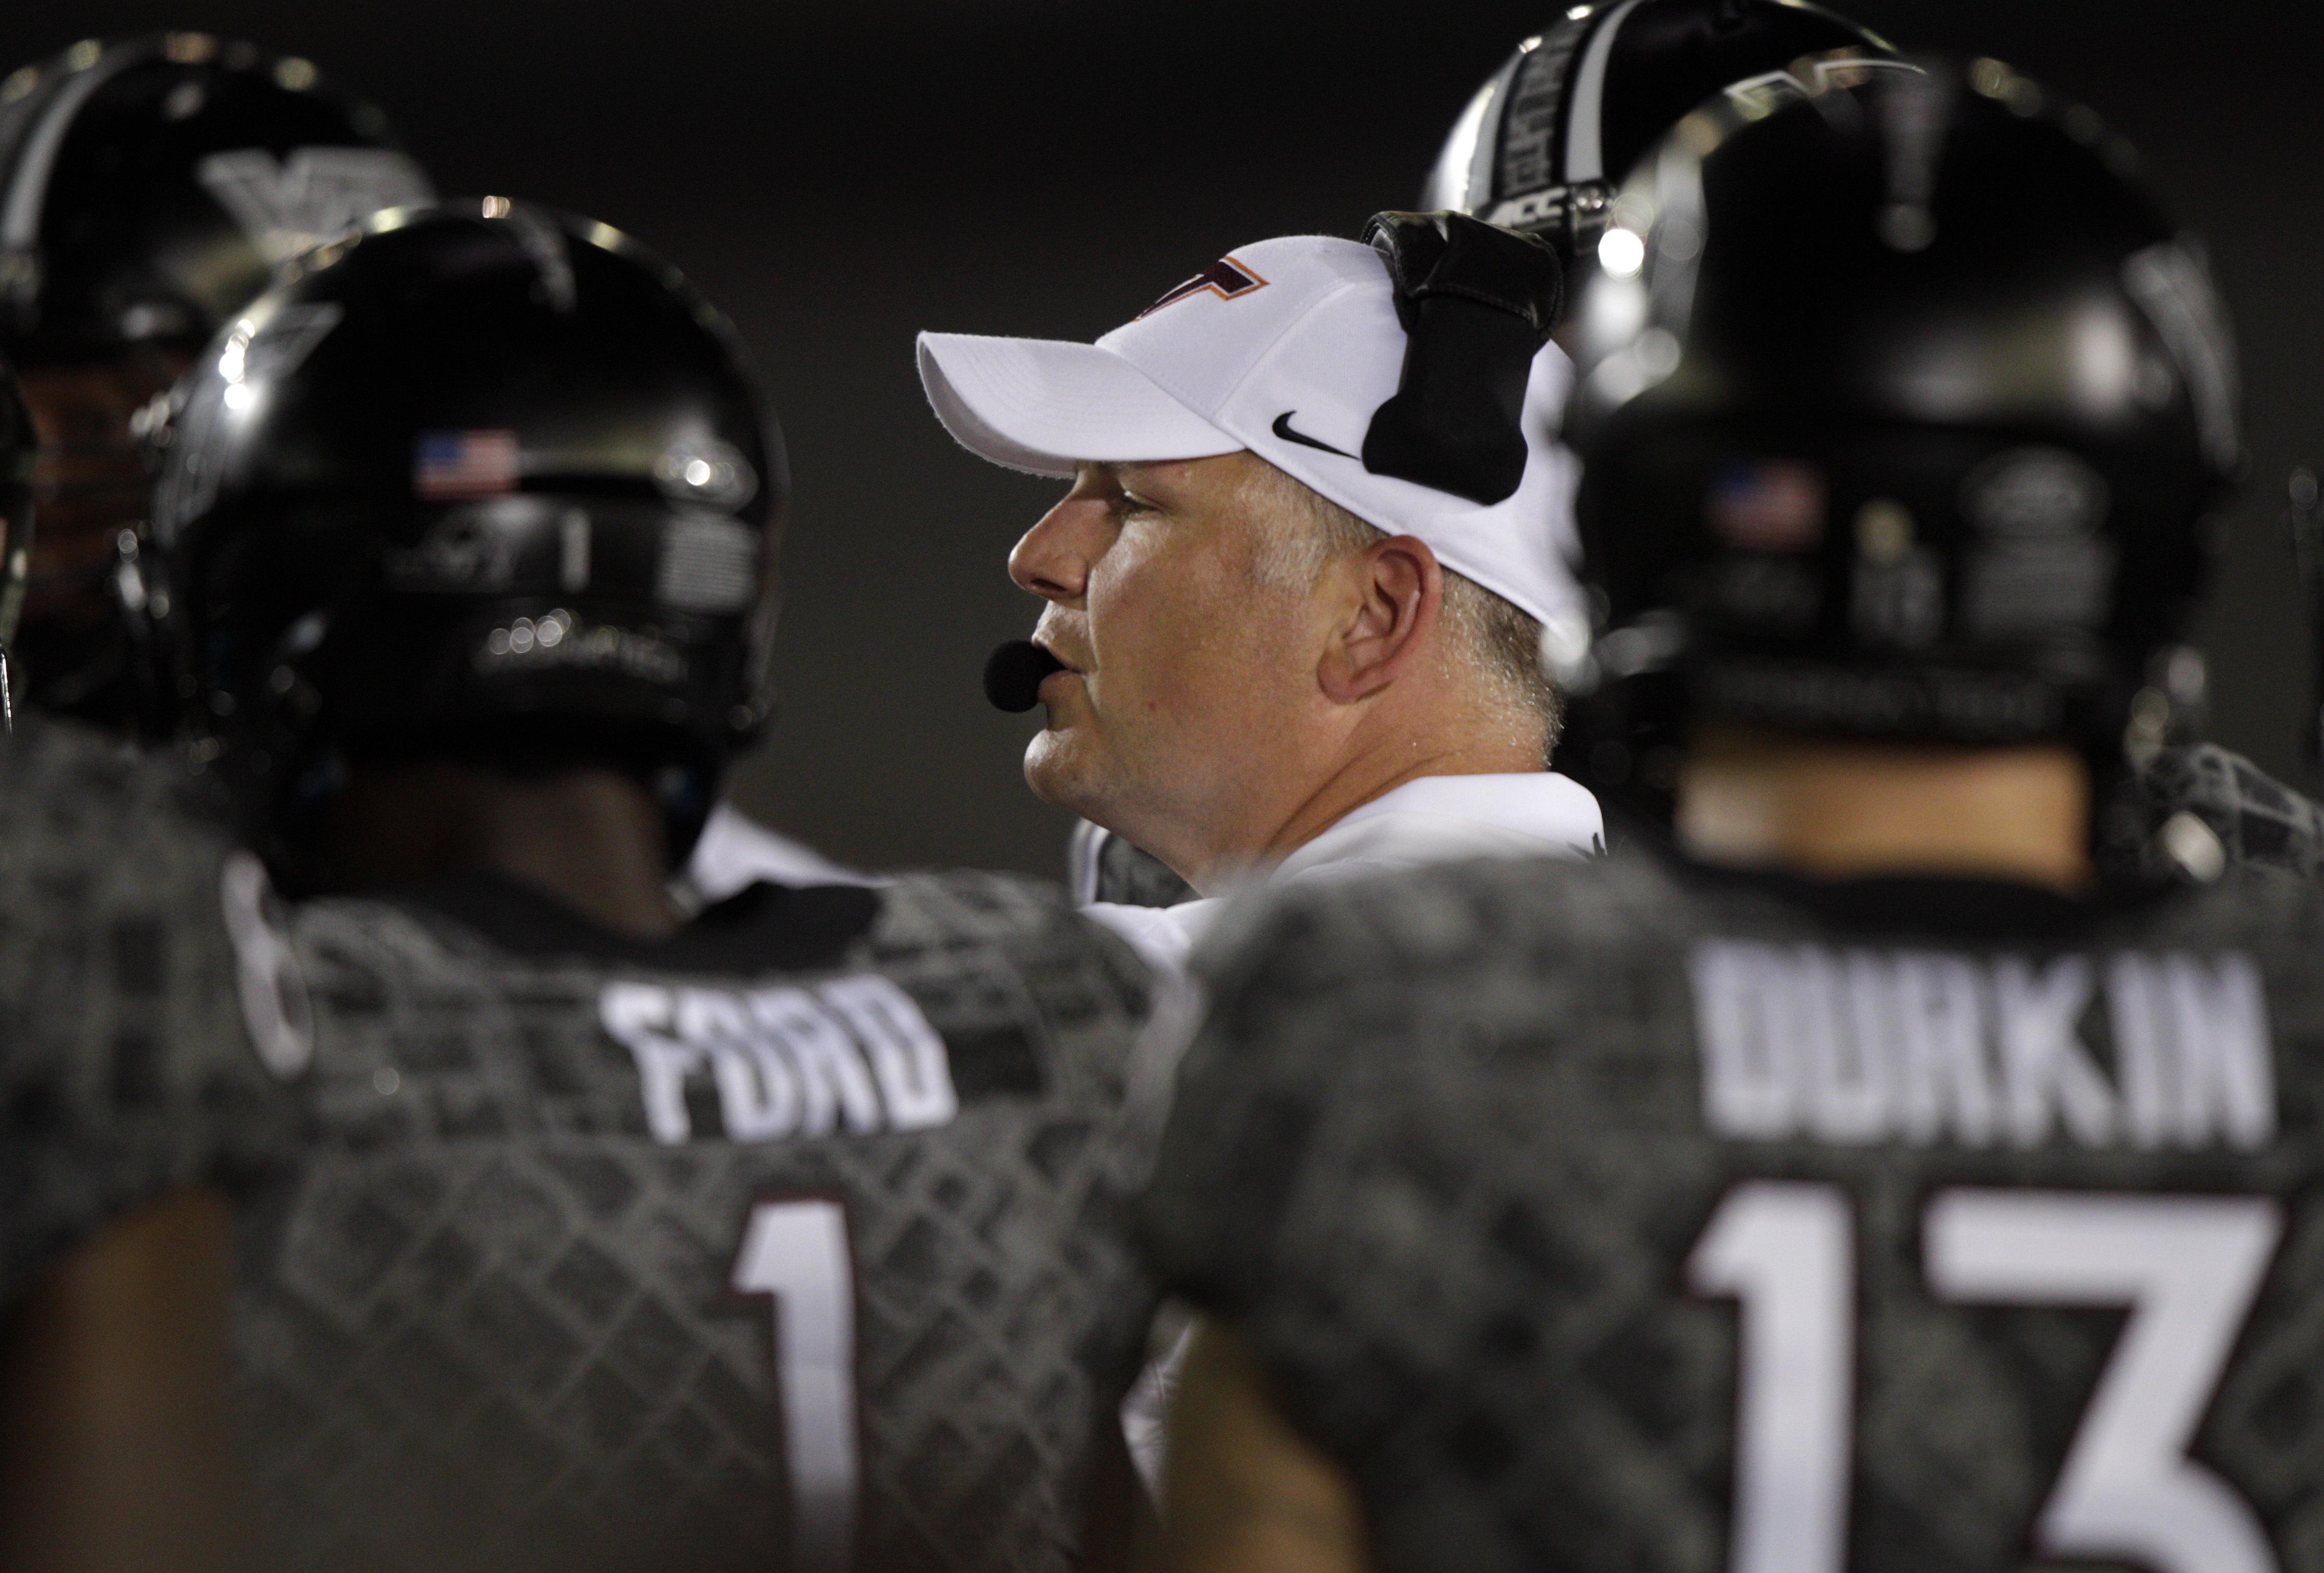 Virginia Tech coach Justin Fuente talks with his players during the first half of an NCAA college football game against Tennessee at Bristol Motor Speedway on Saturday, Sept. 10, 2016, in Bristol, Tenn. (AP Photo/Wade Payne)